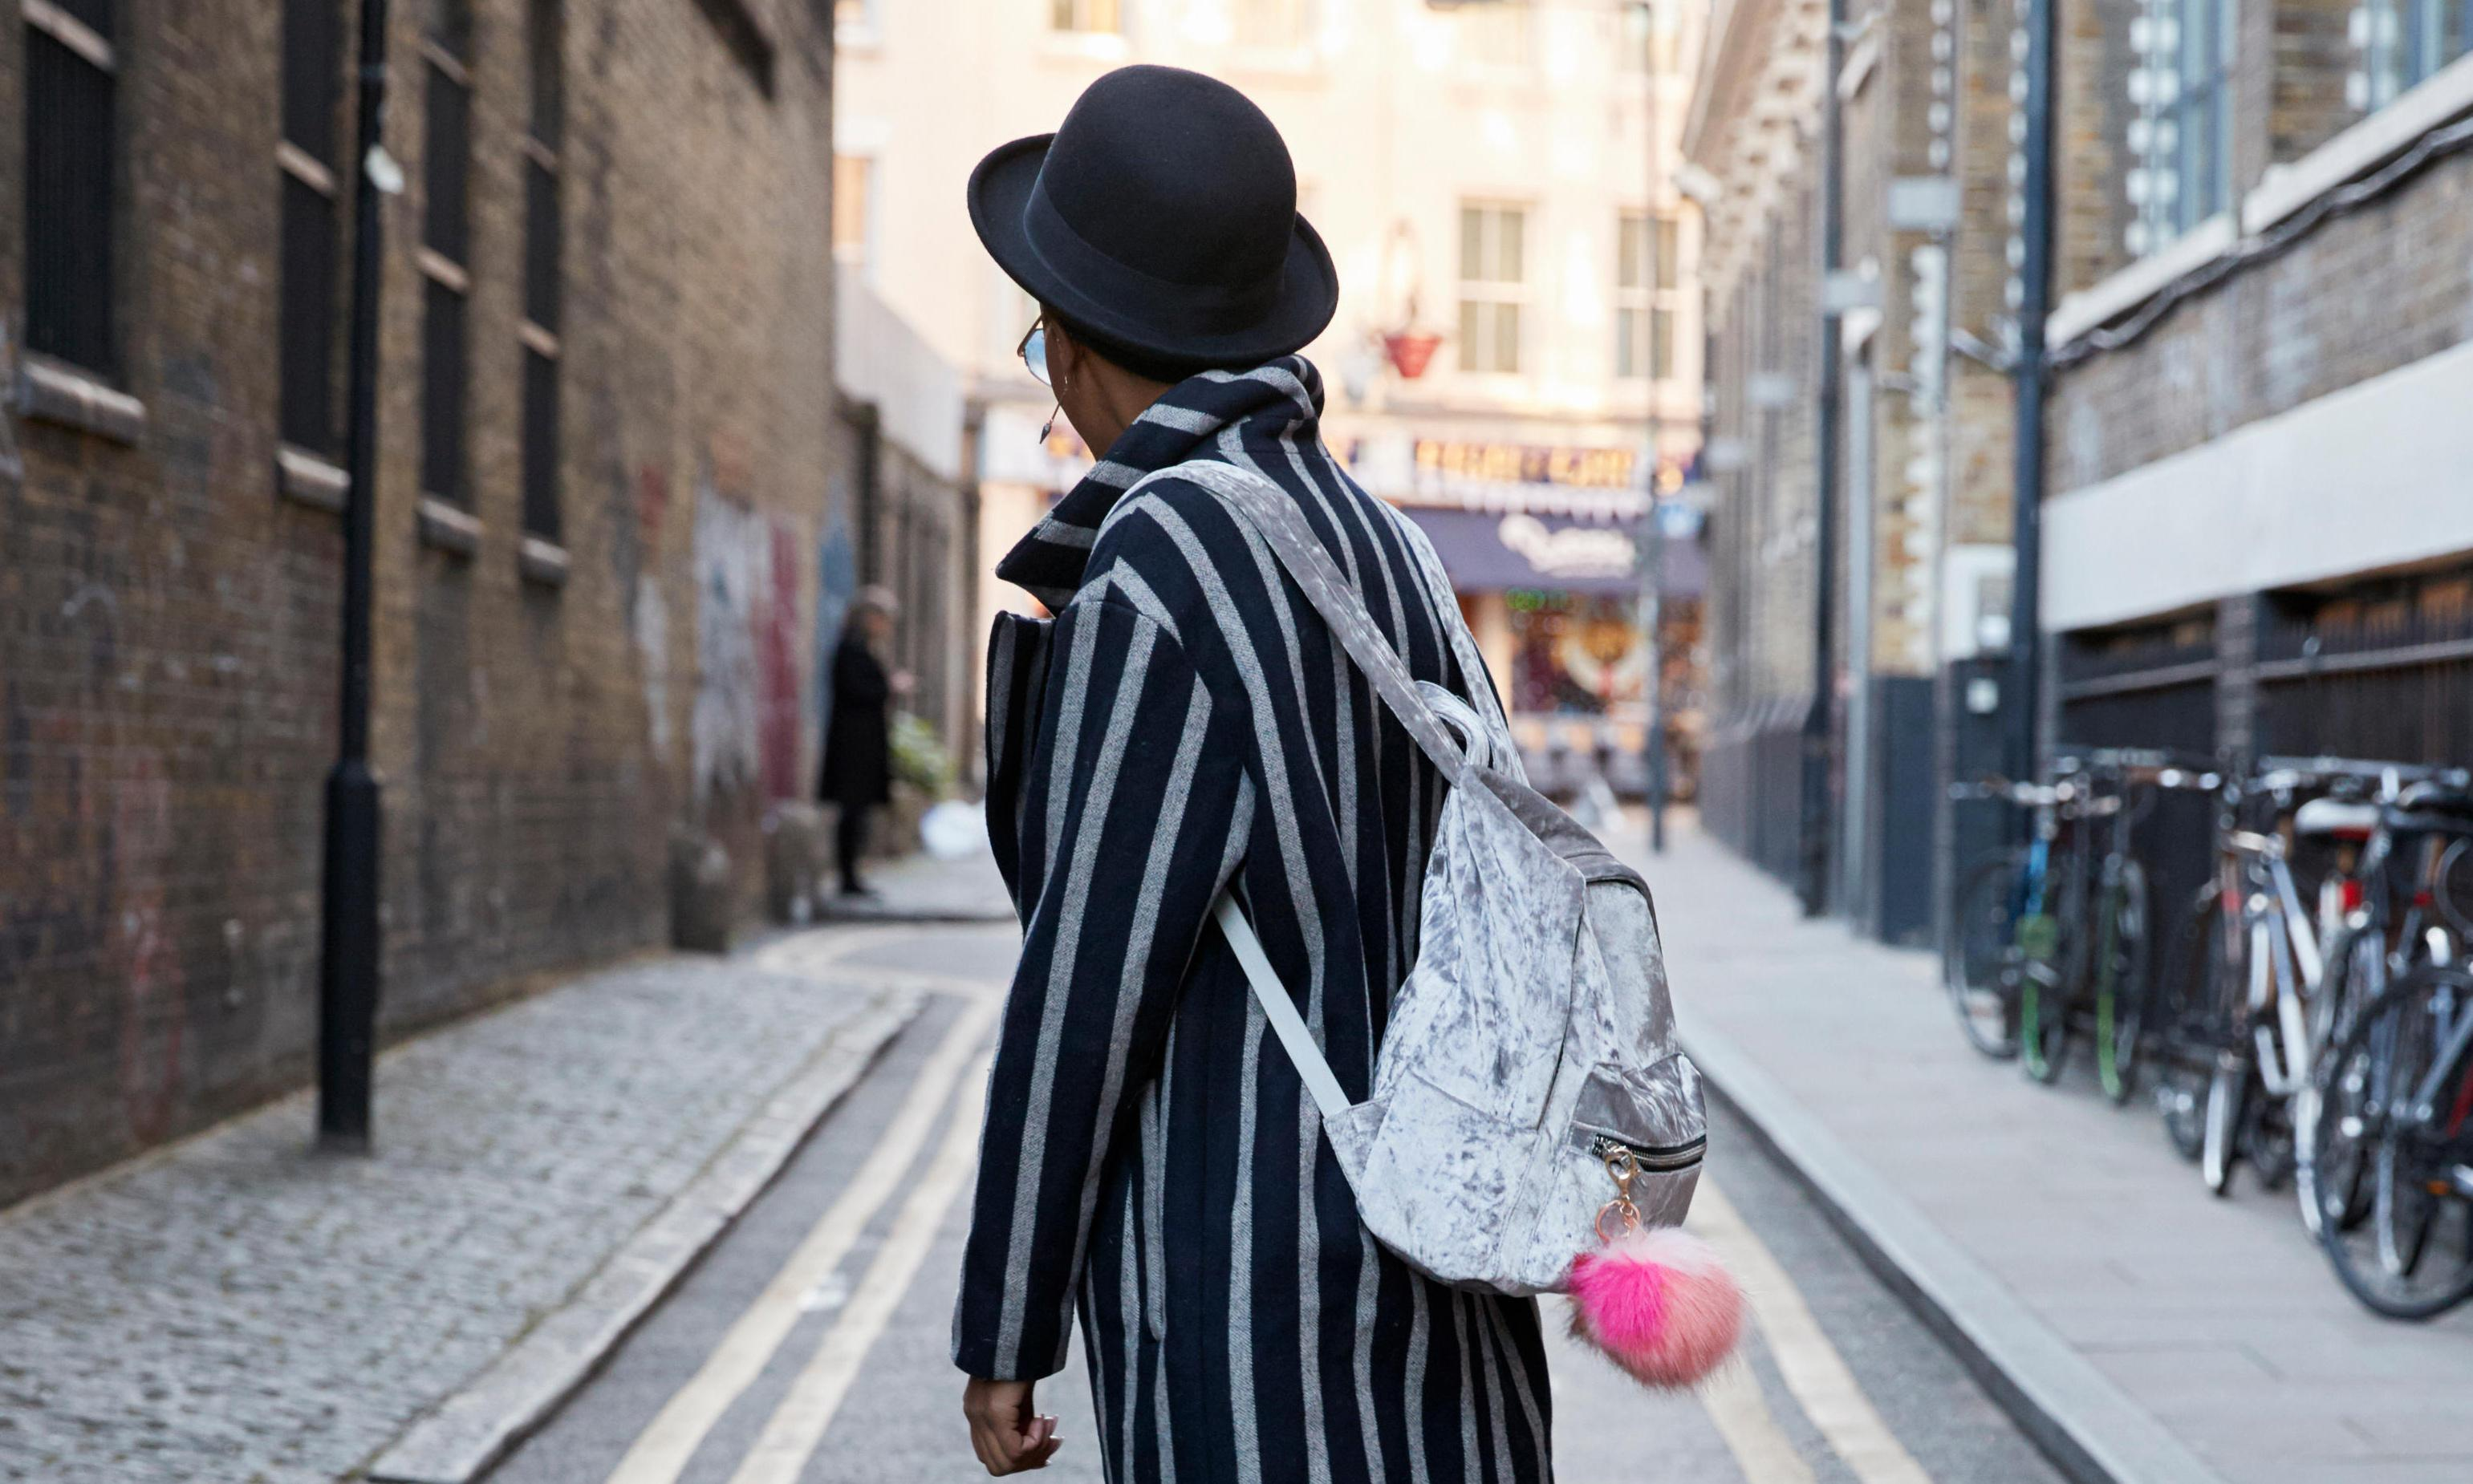 Bags of style: how the backpack became a fashion essential